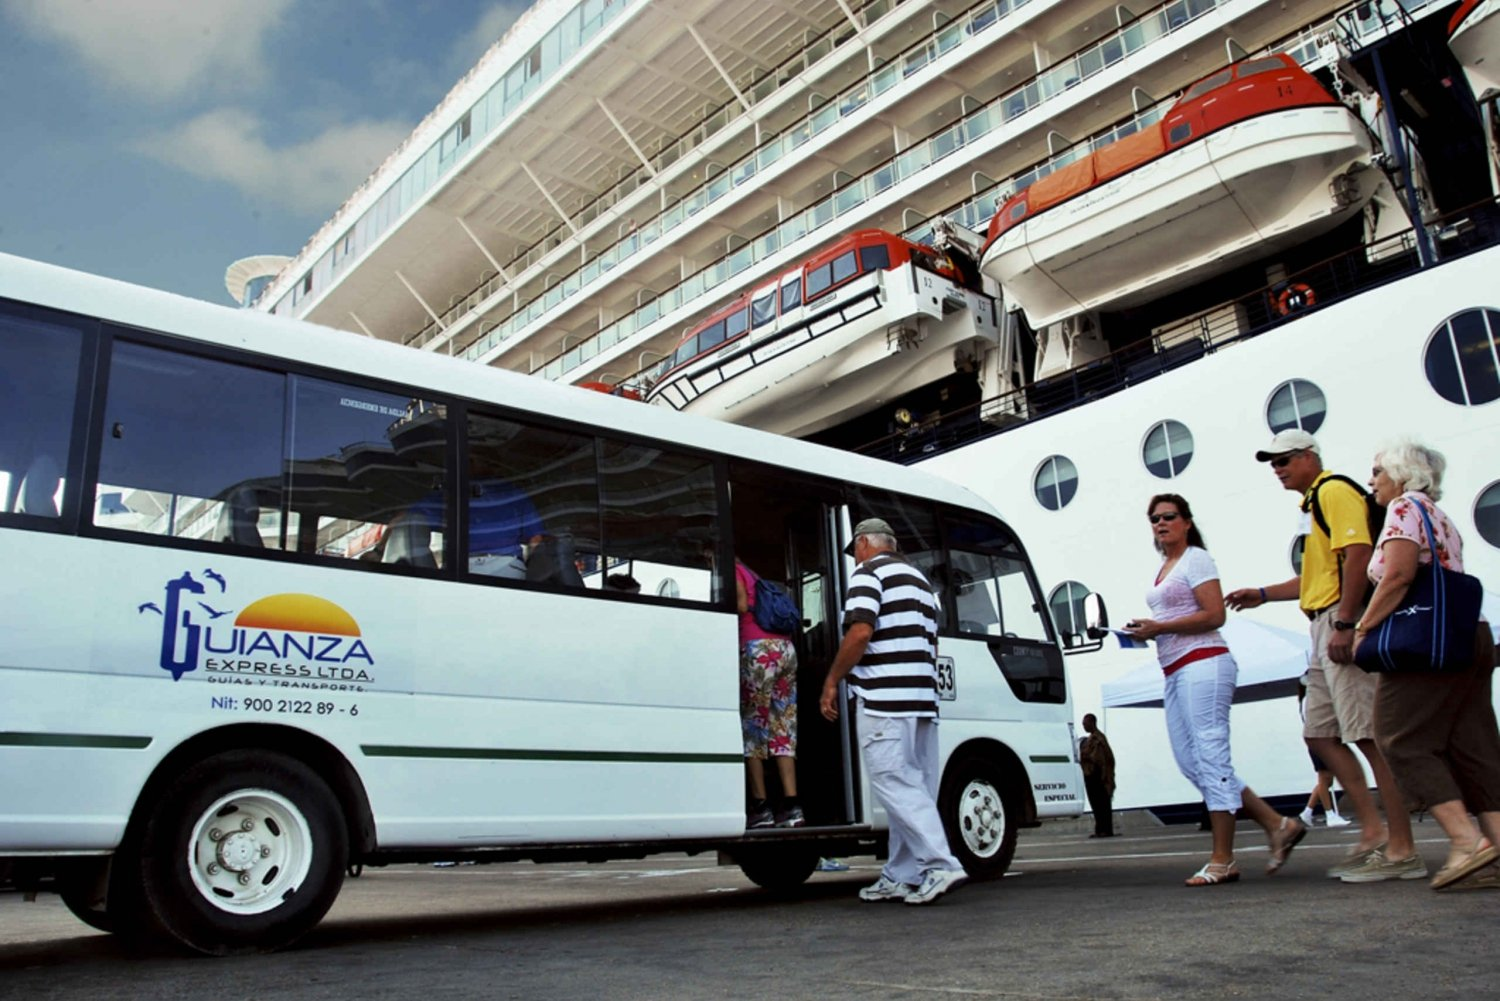 Cartagena City Tour: 4-Hour Cruise Excursion